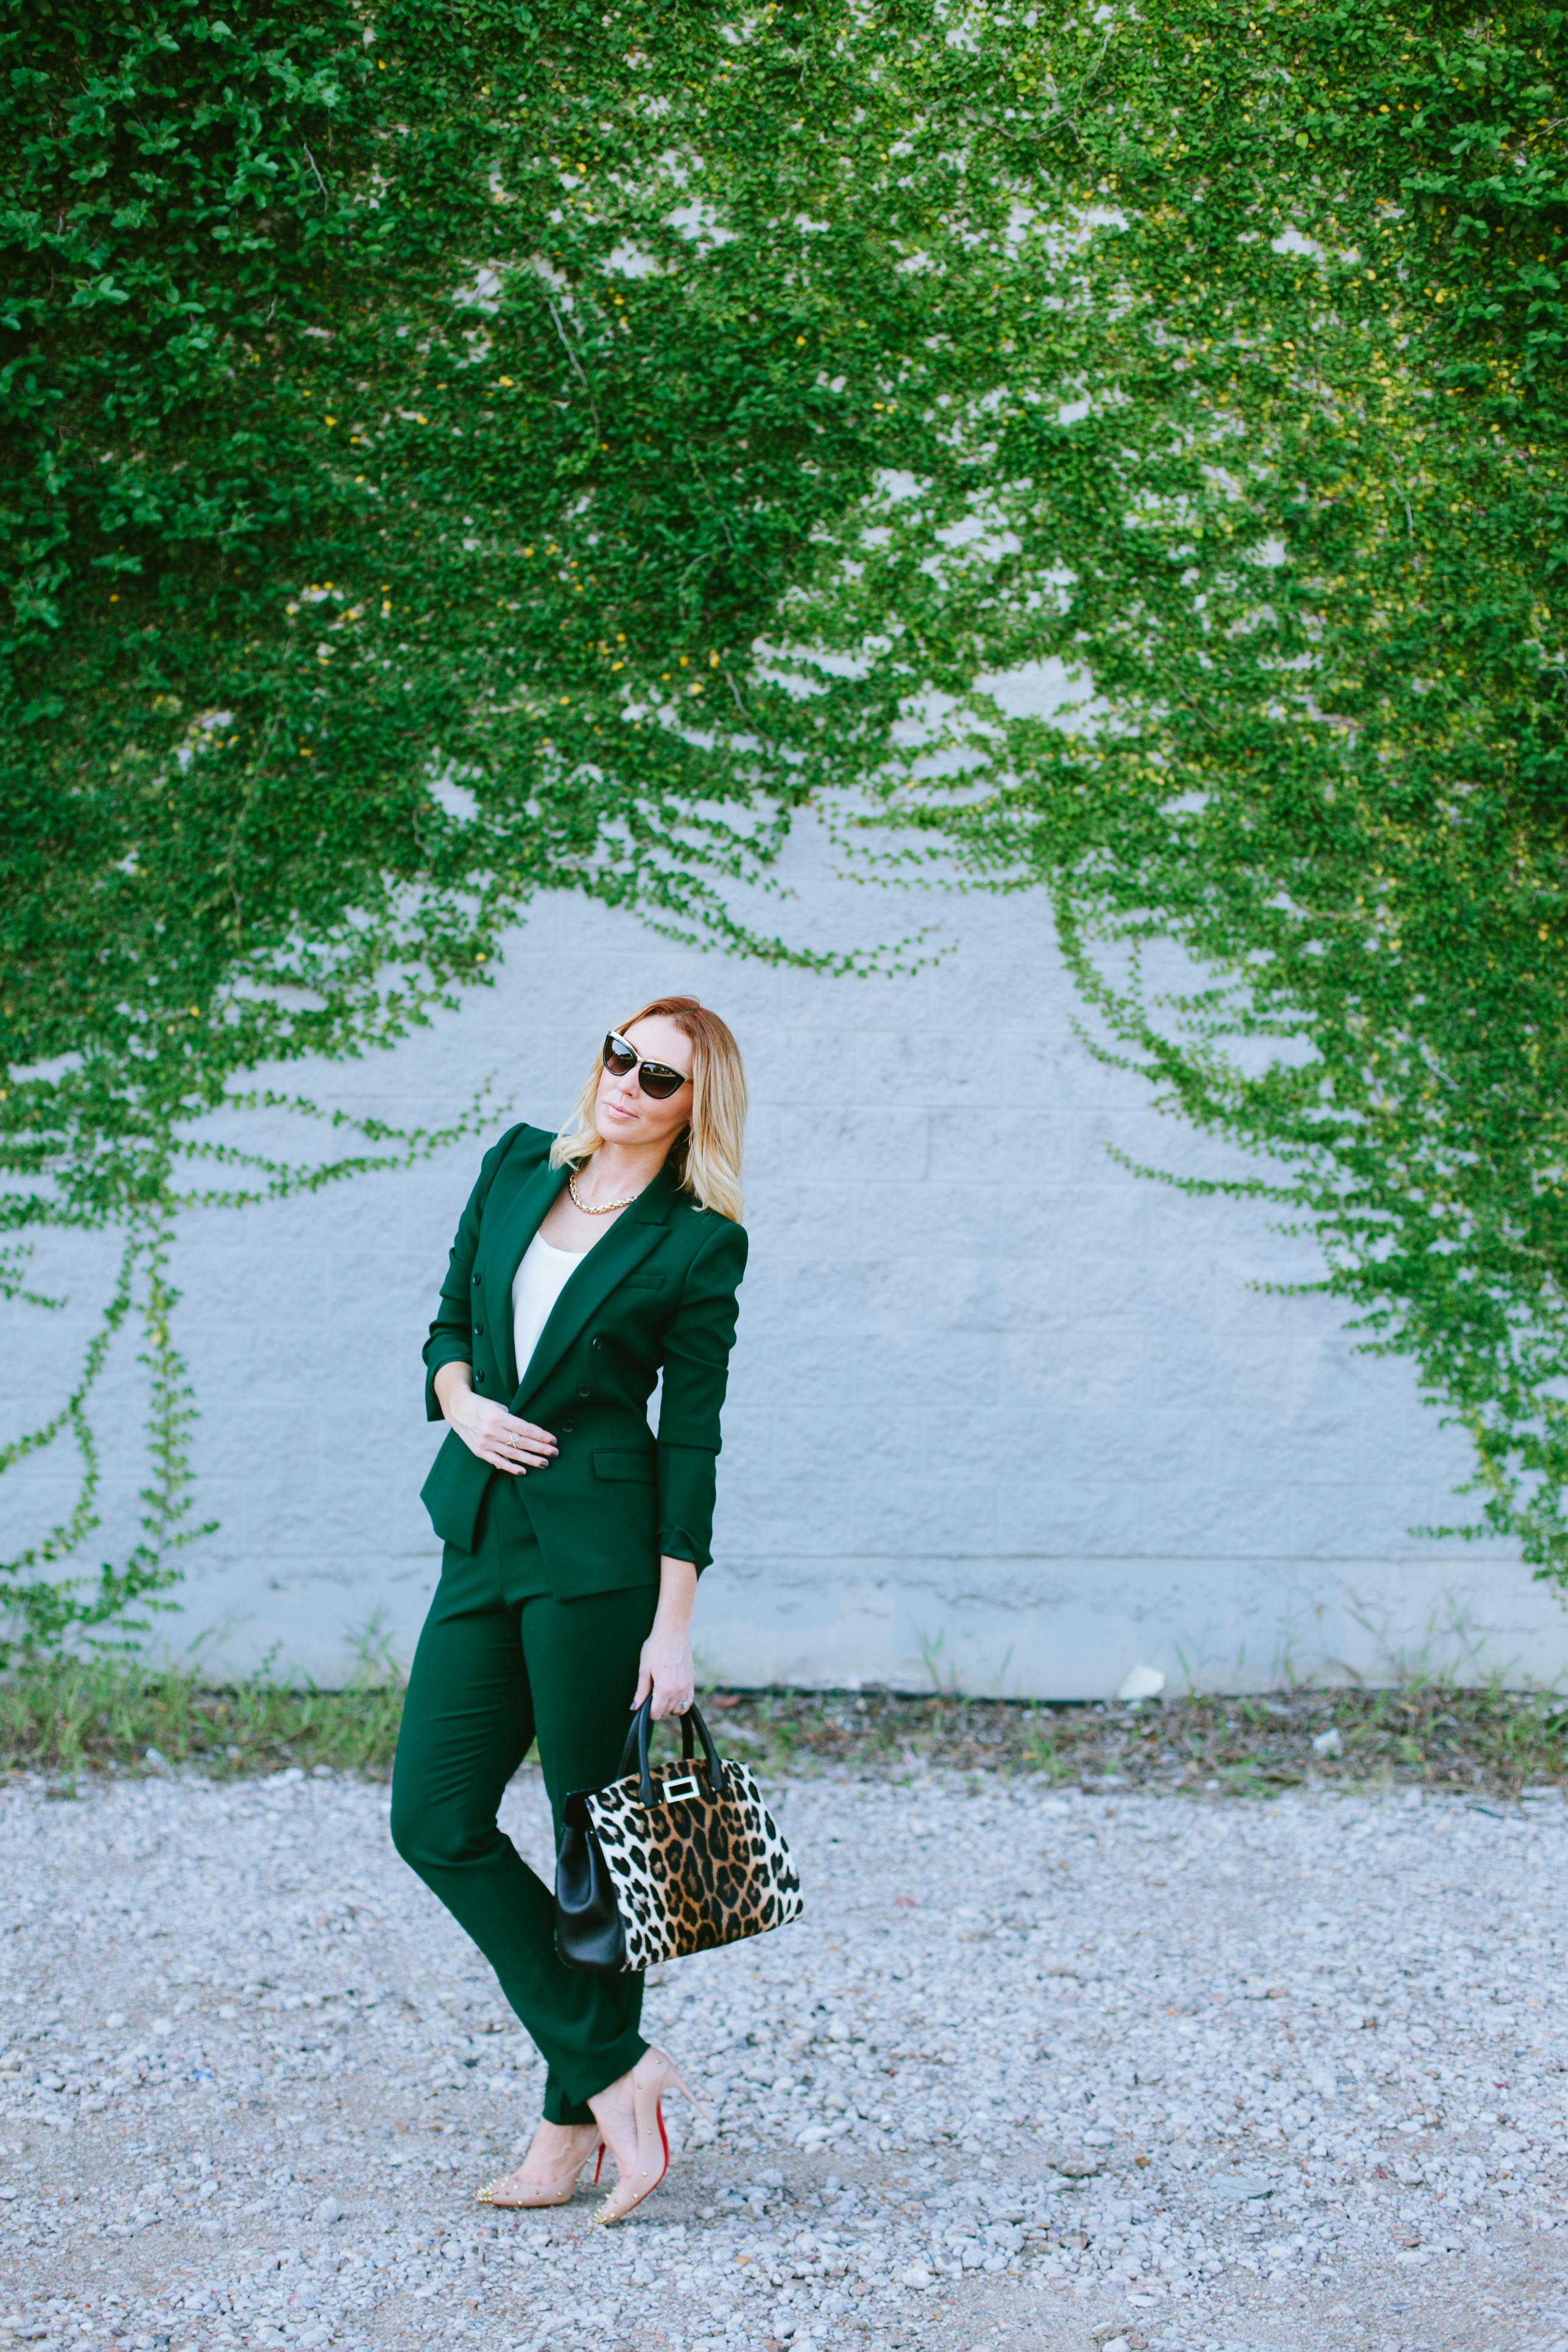 Natalie-King-Montrose-Green-Suit-2